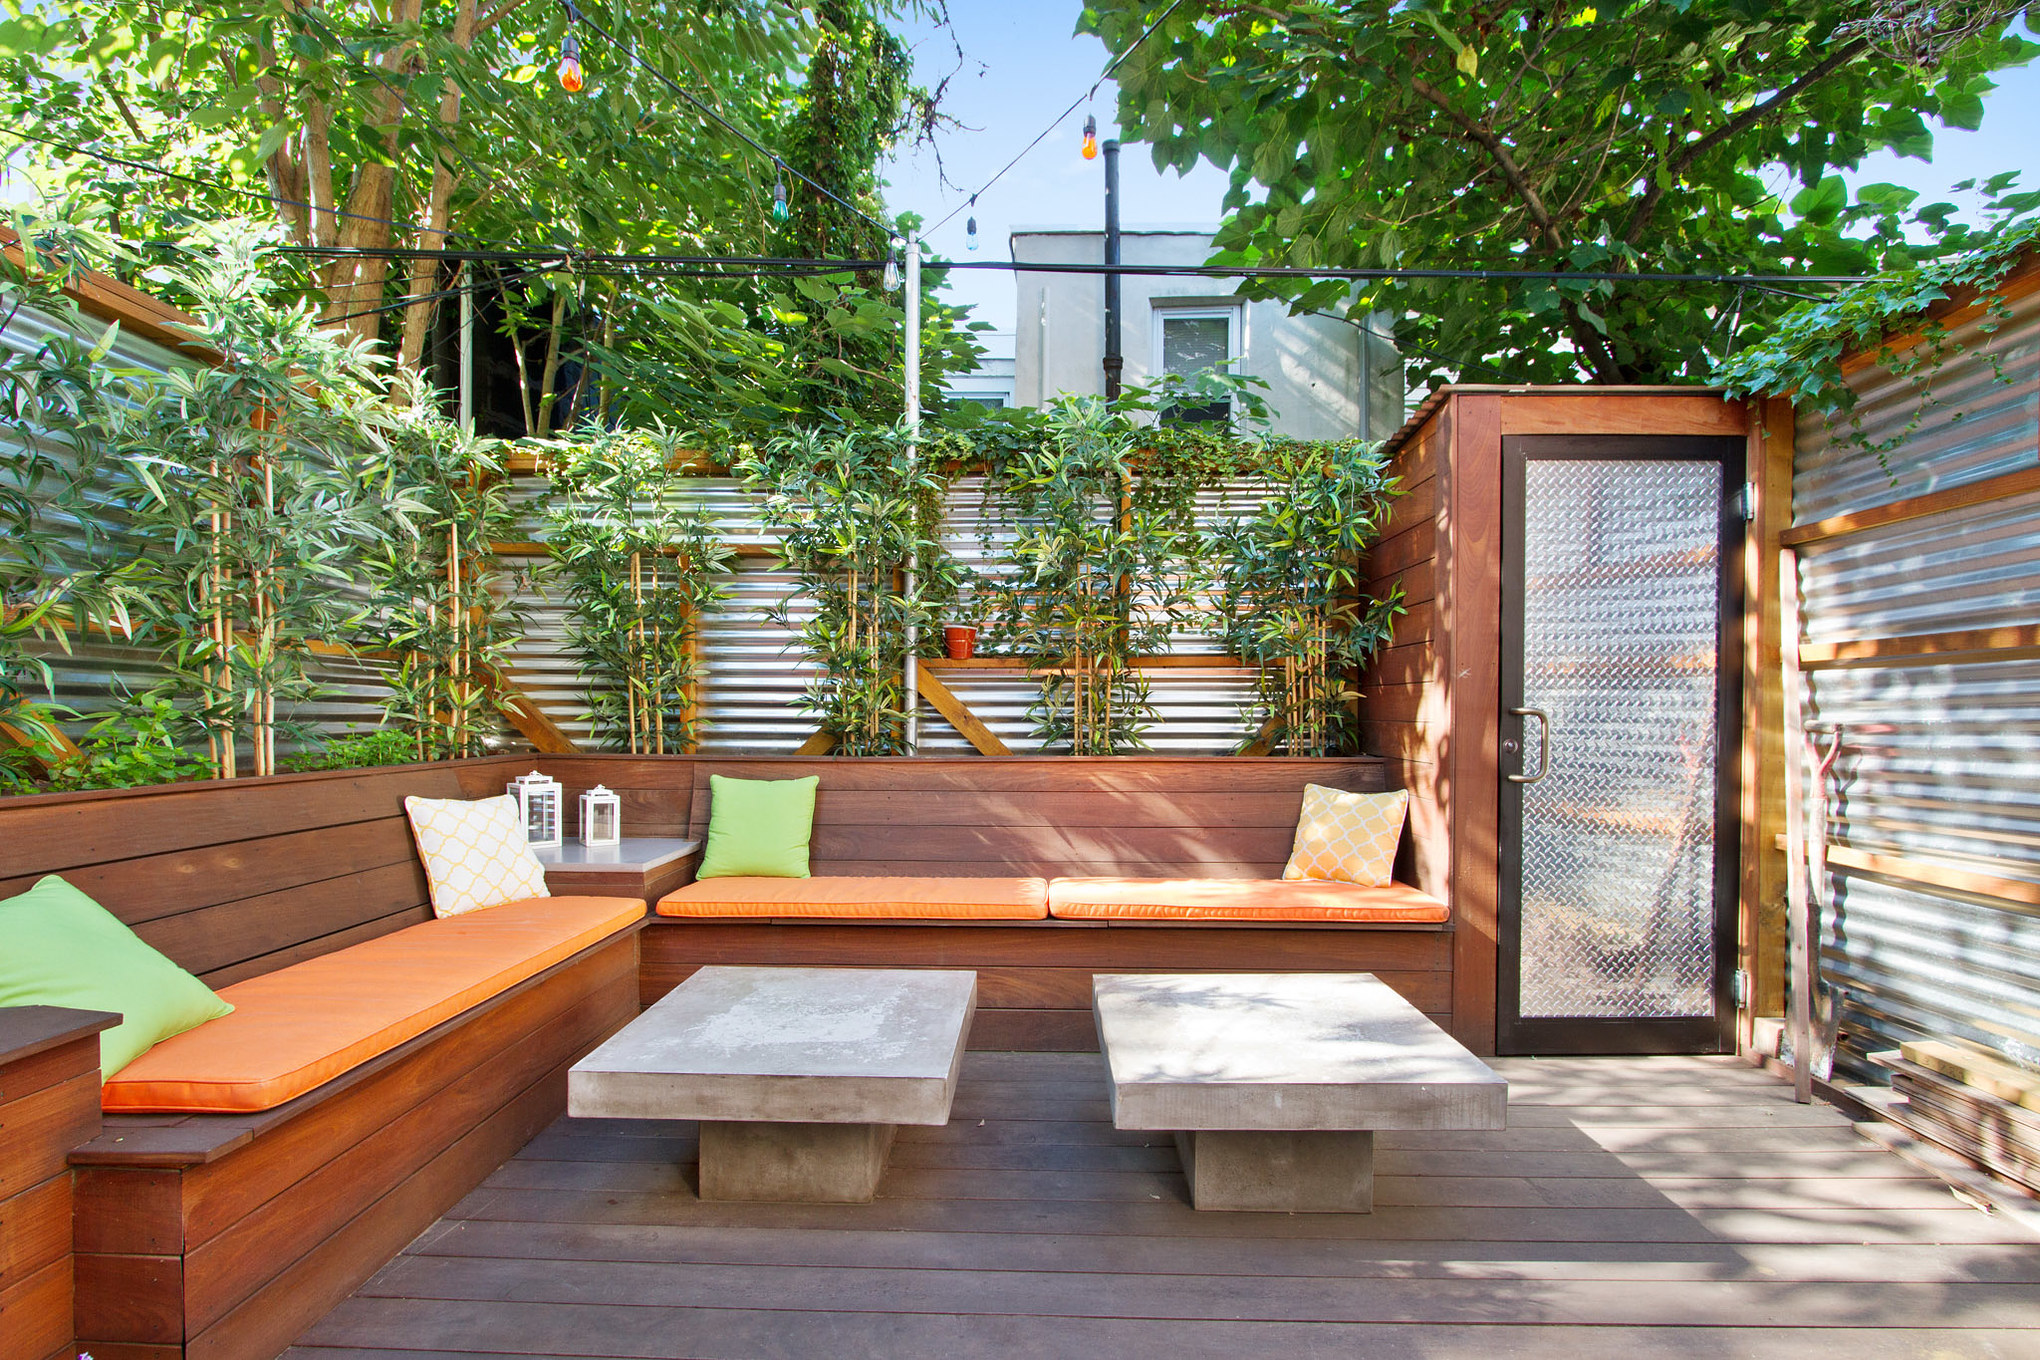 A landscaped backyard in Philadelphia with corrugated metal fences and built-in benches.